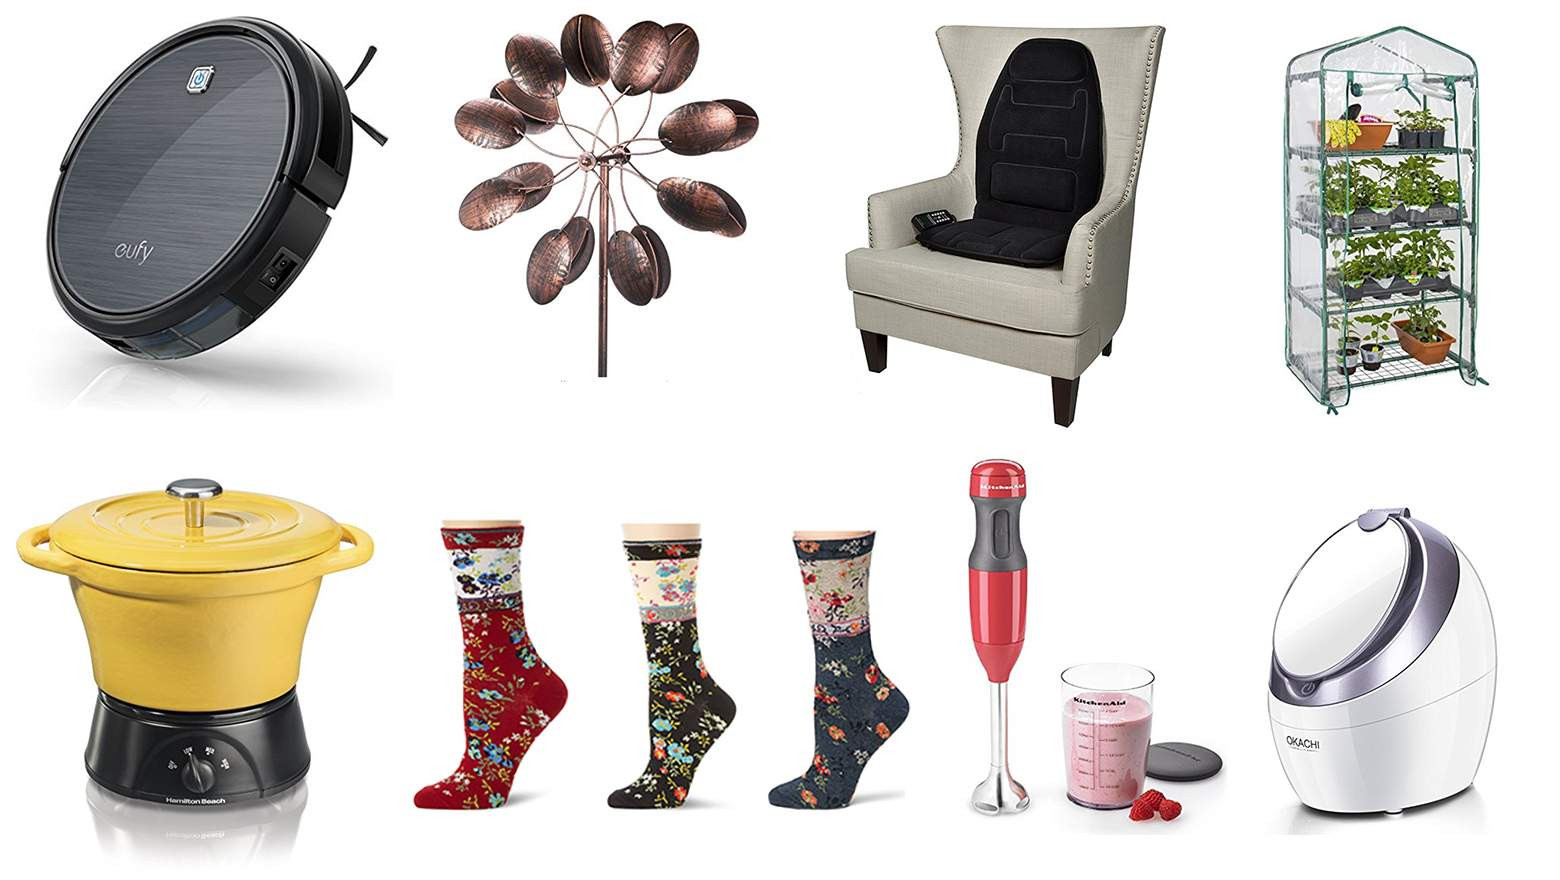 Best ideas about Gift Ideas For Older Women . Save or Pin Top 10 Best Cool Mother's Day Gifts for Older Women Now.